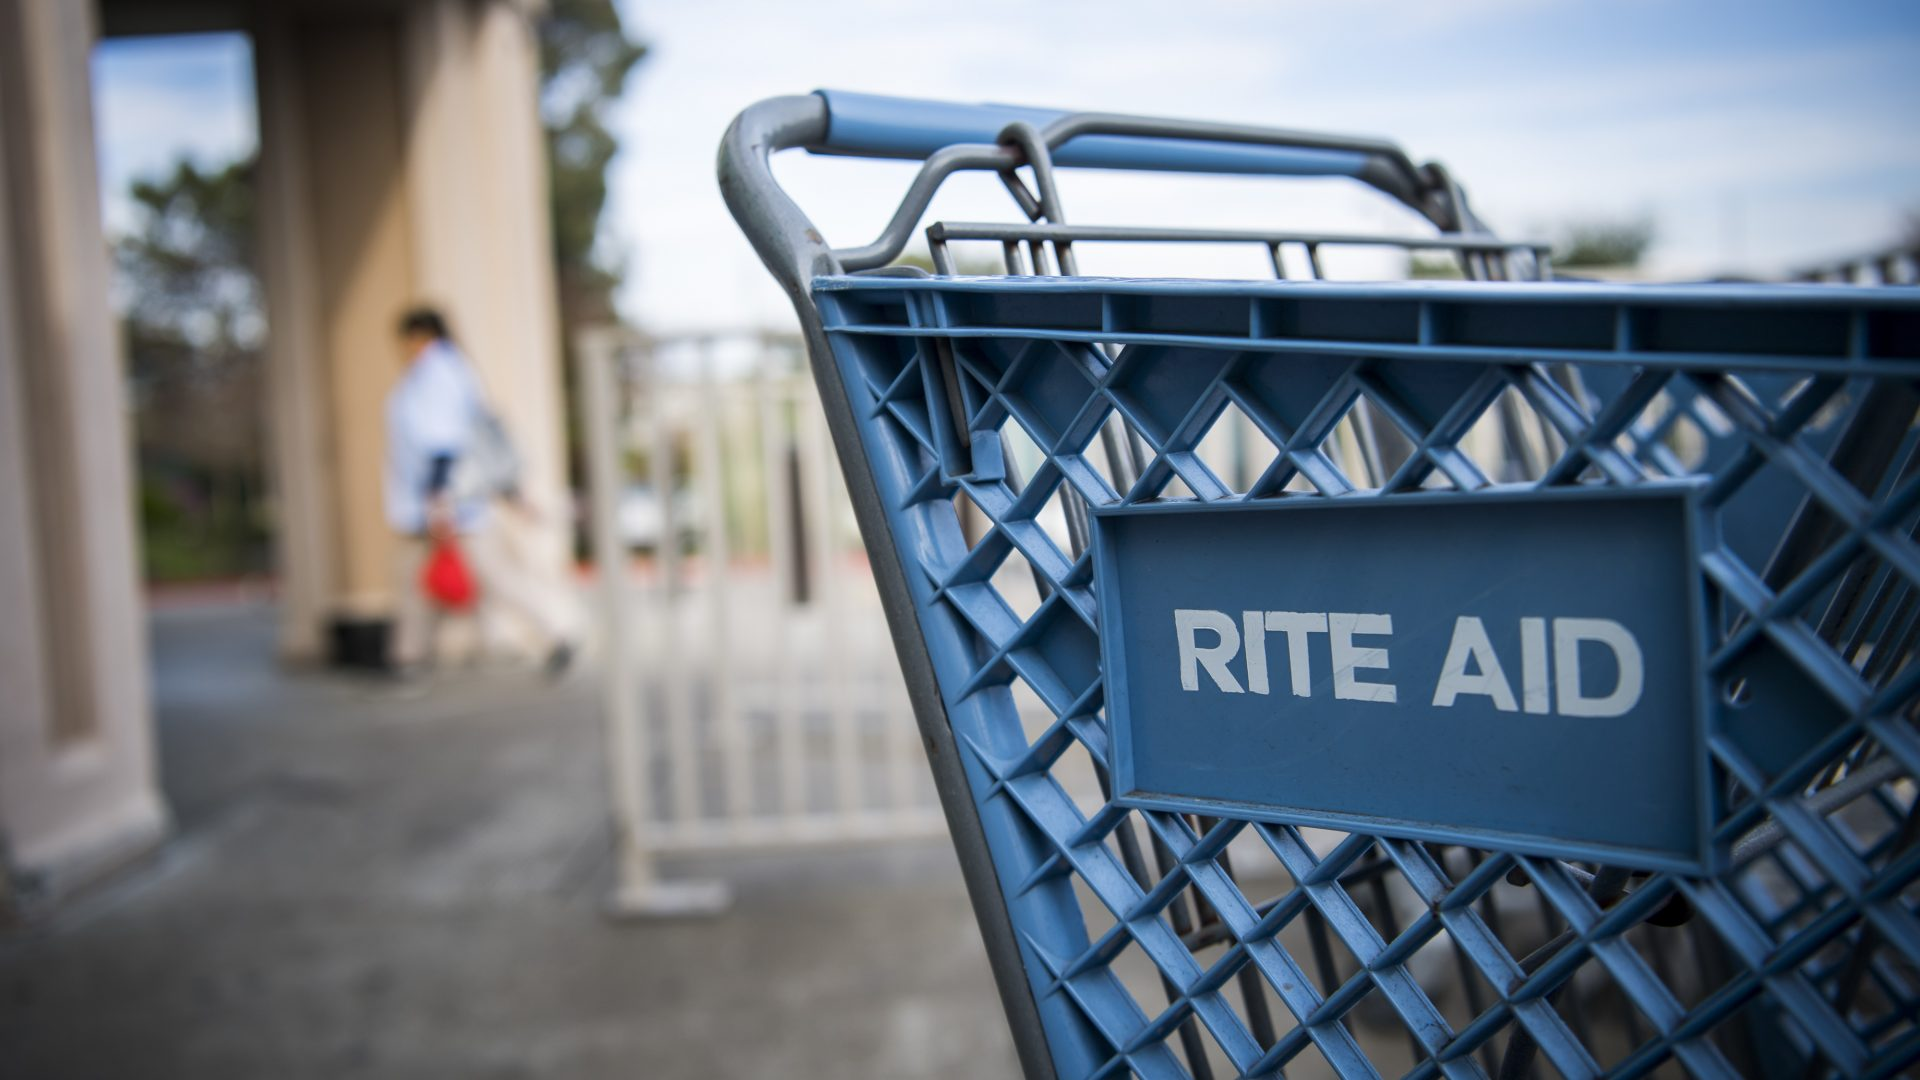 Signage is displayed on a shopping cart outside a Rite Aid Corp. store in Hercules, California, U.S., on Tuesday, Jan. 2, 2018. Rite Aid Corp. is expected to release earnings figures on Jan 3. Photographer: David Paul Morris/Bloomberg via Getty Images